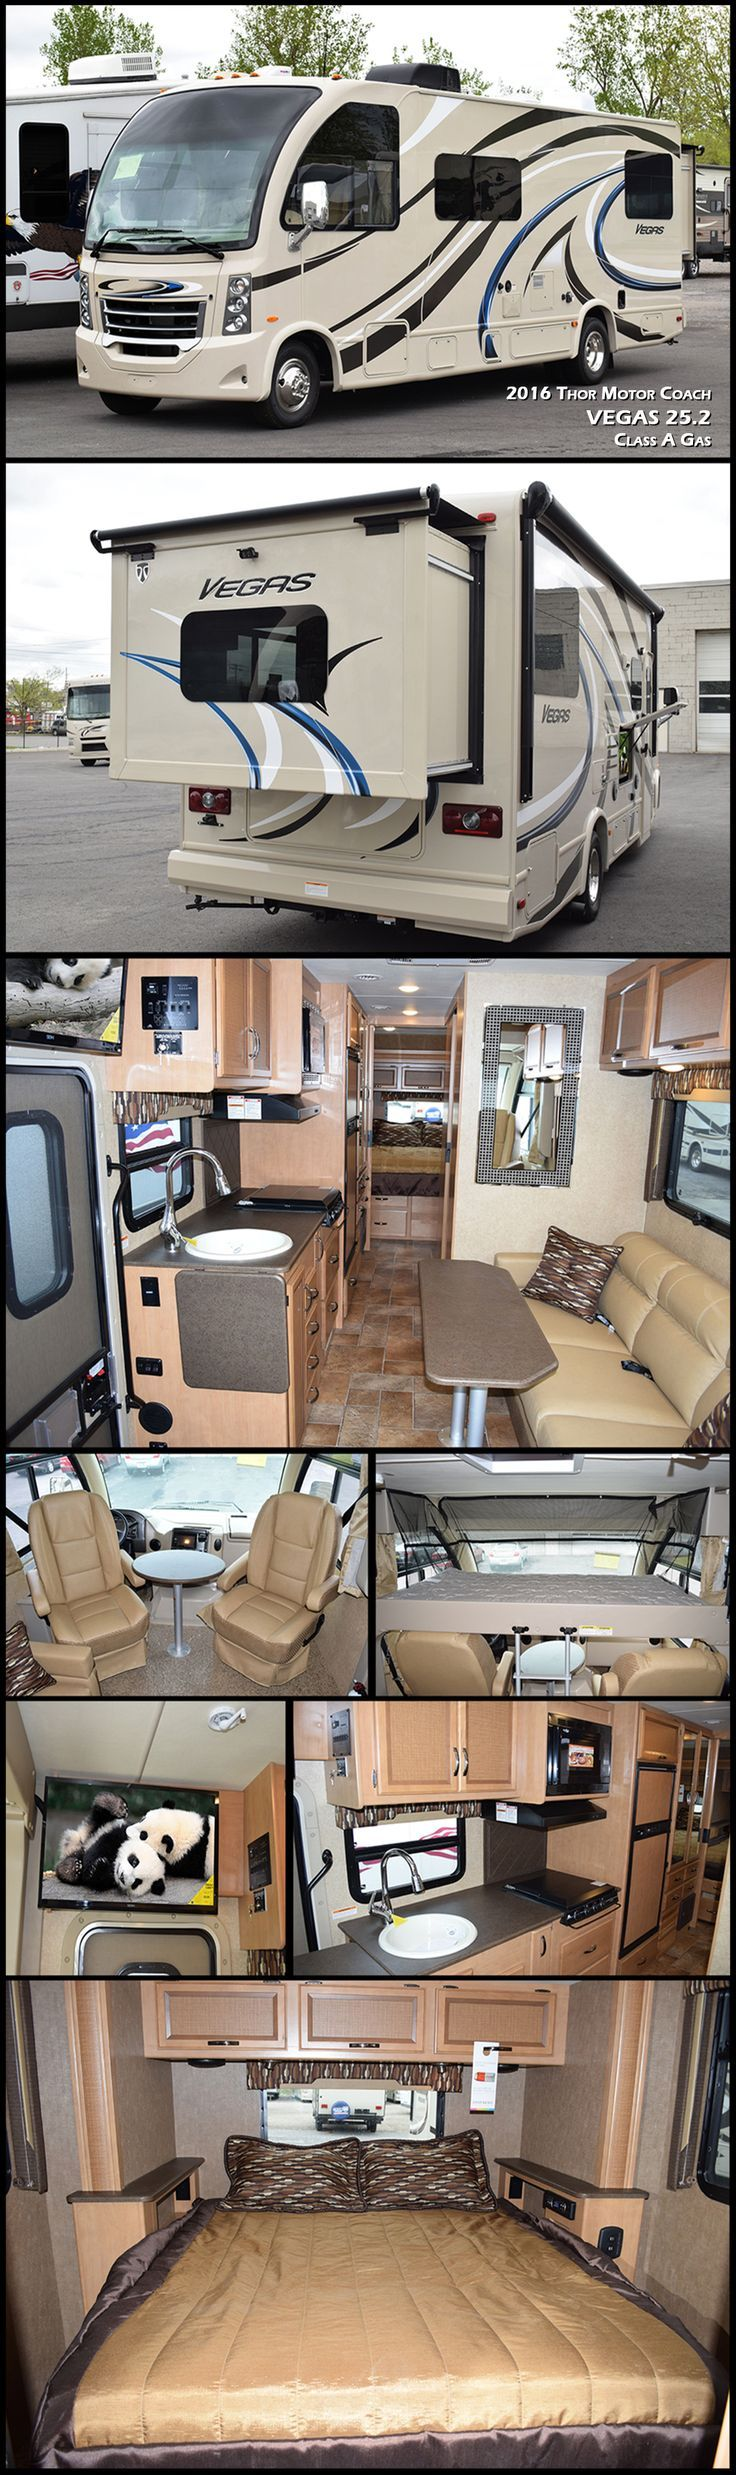 8 Best Class C Images On Pinterest Bench Seat And Bunkhouse 2015 Thor Vegas Wiring Diagram 2016 Motor Coach Swm1433